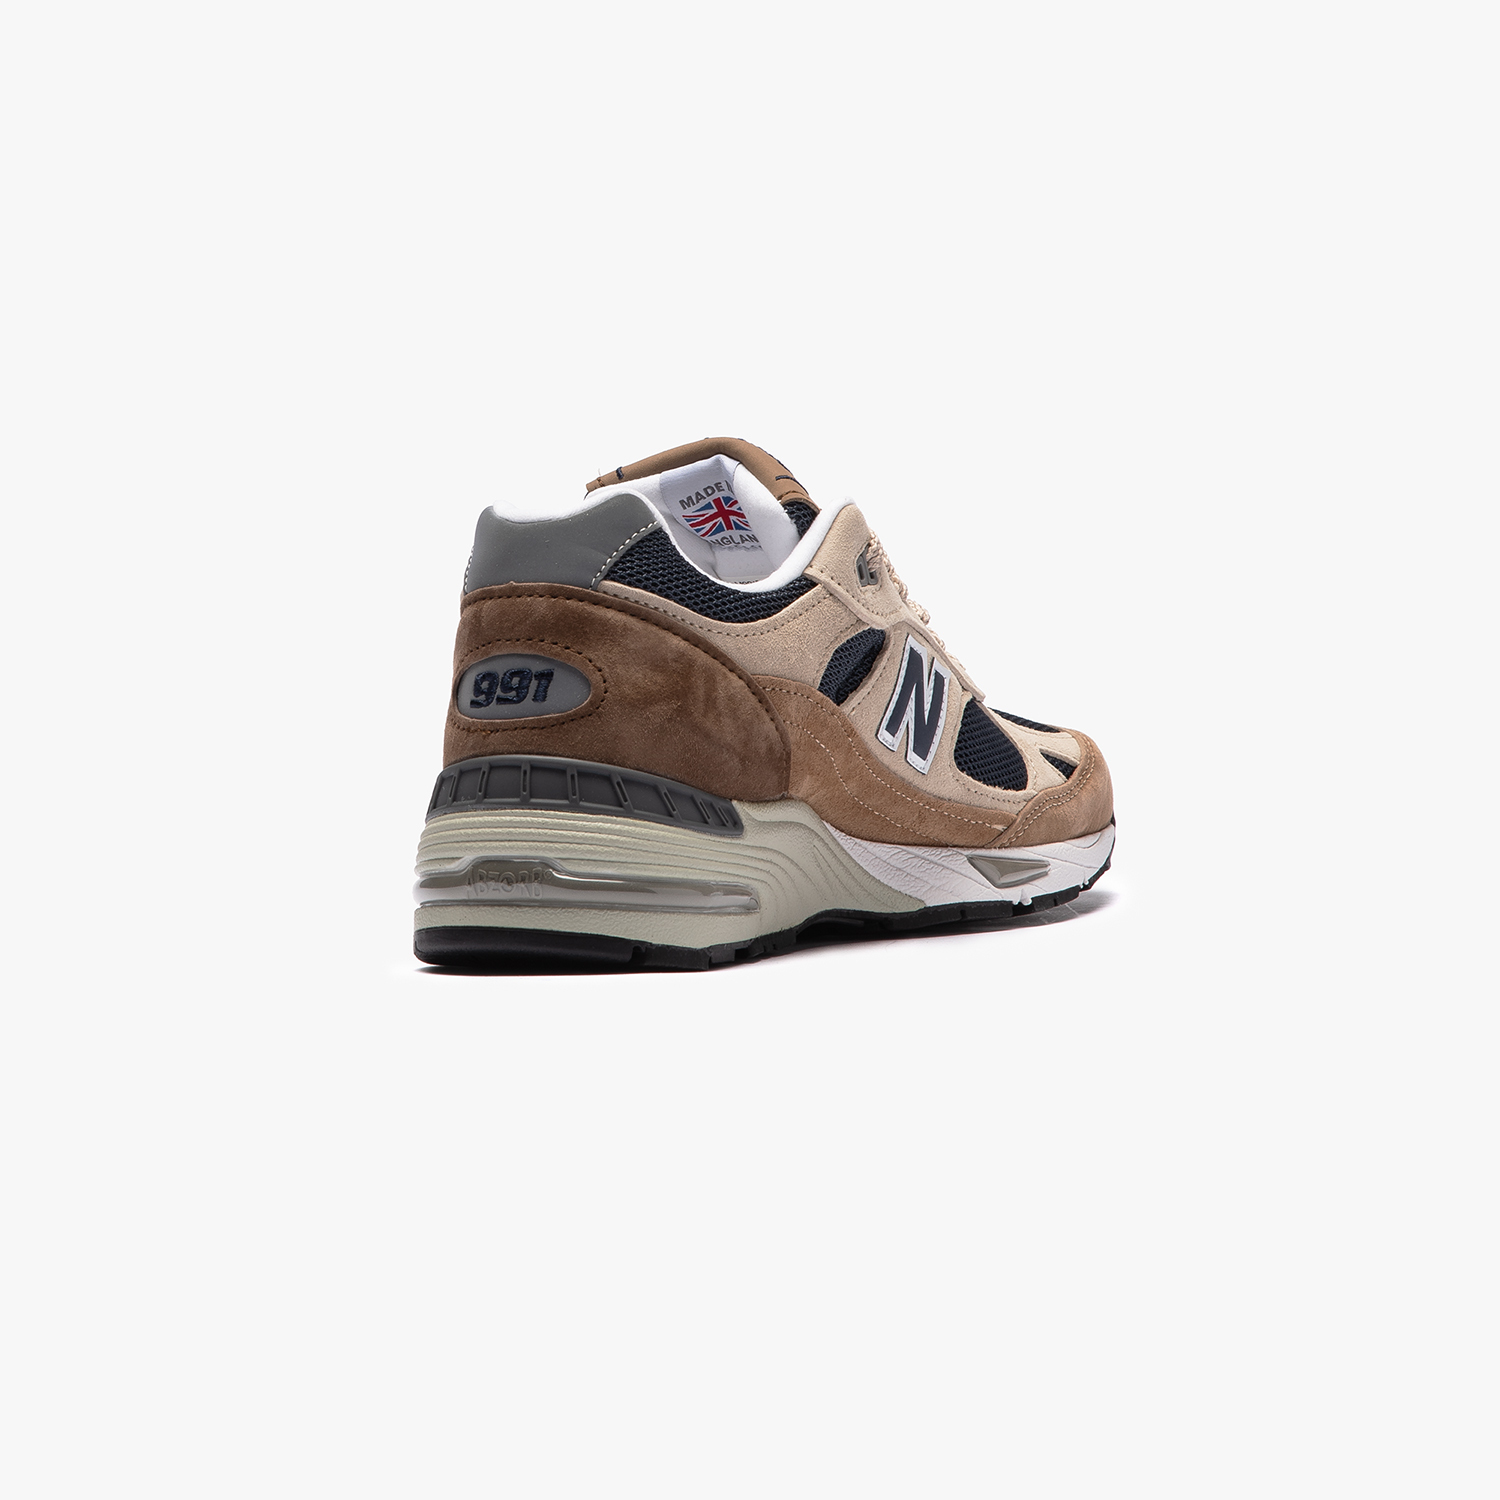 New Balance M991 Made in UK